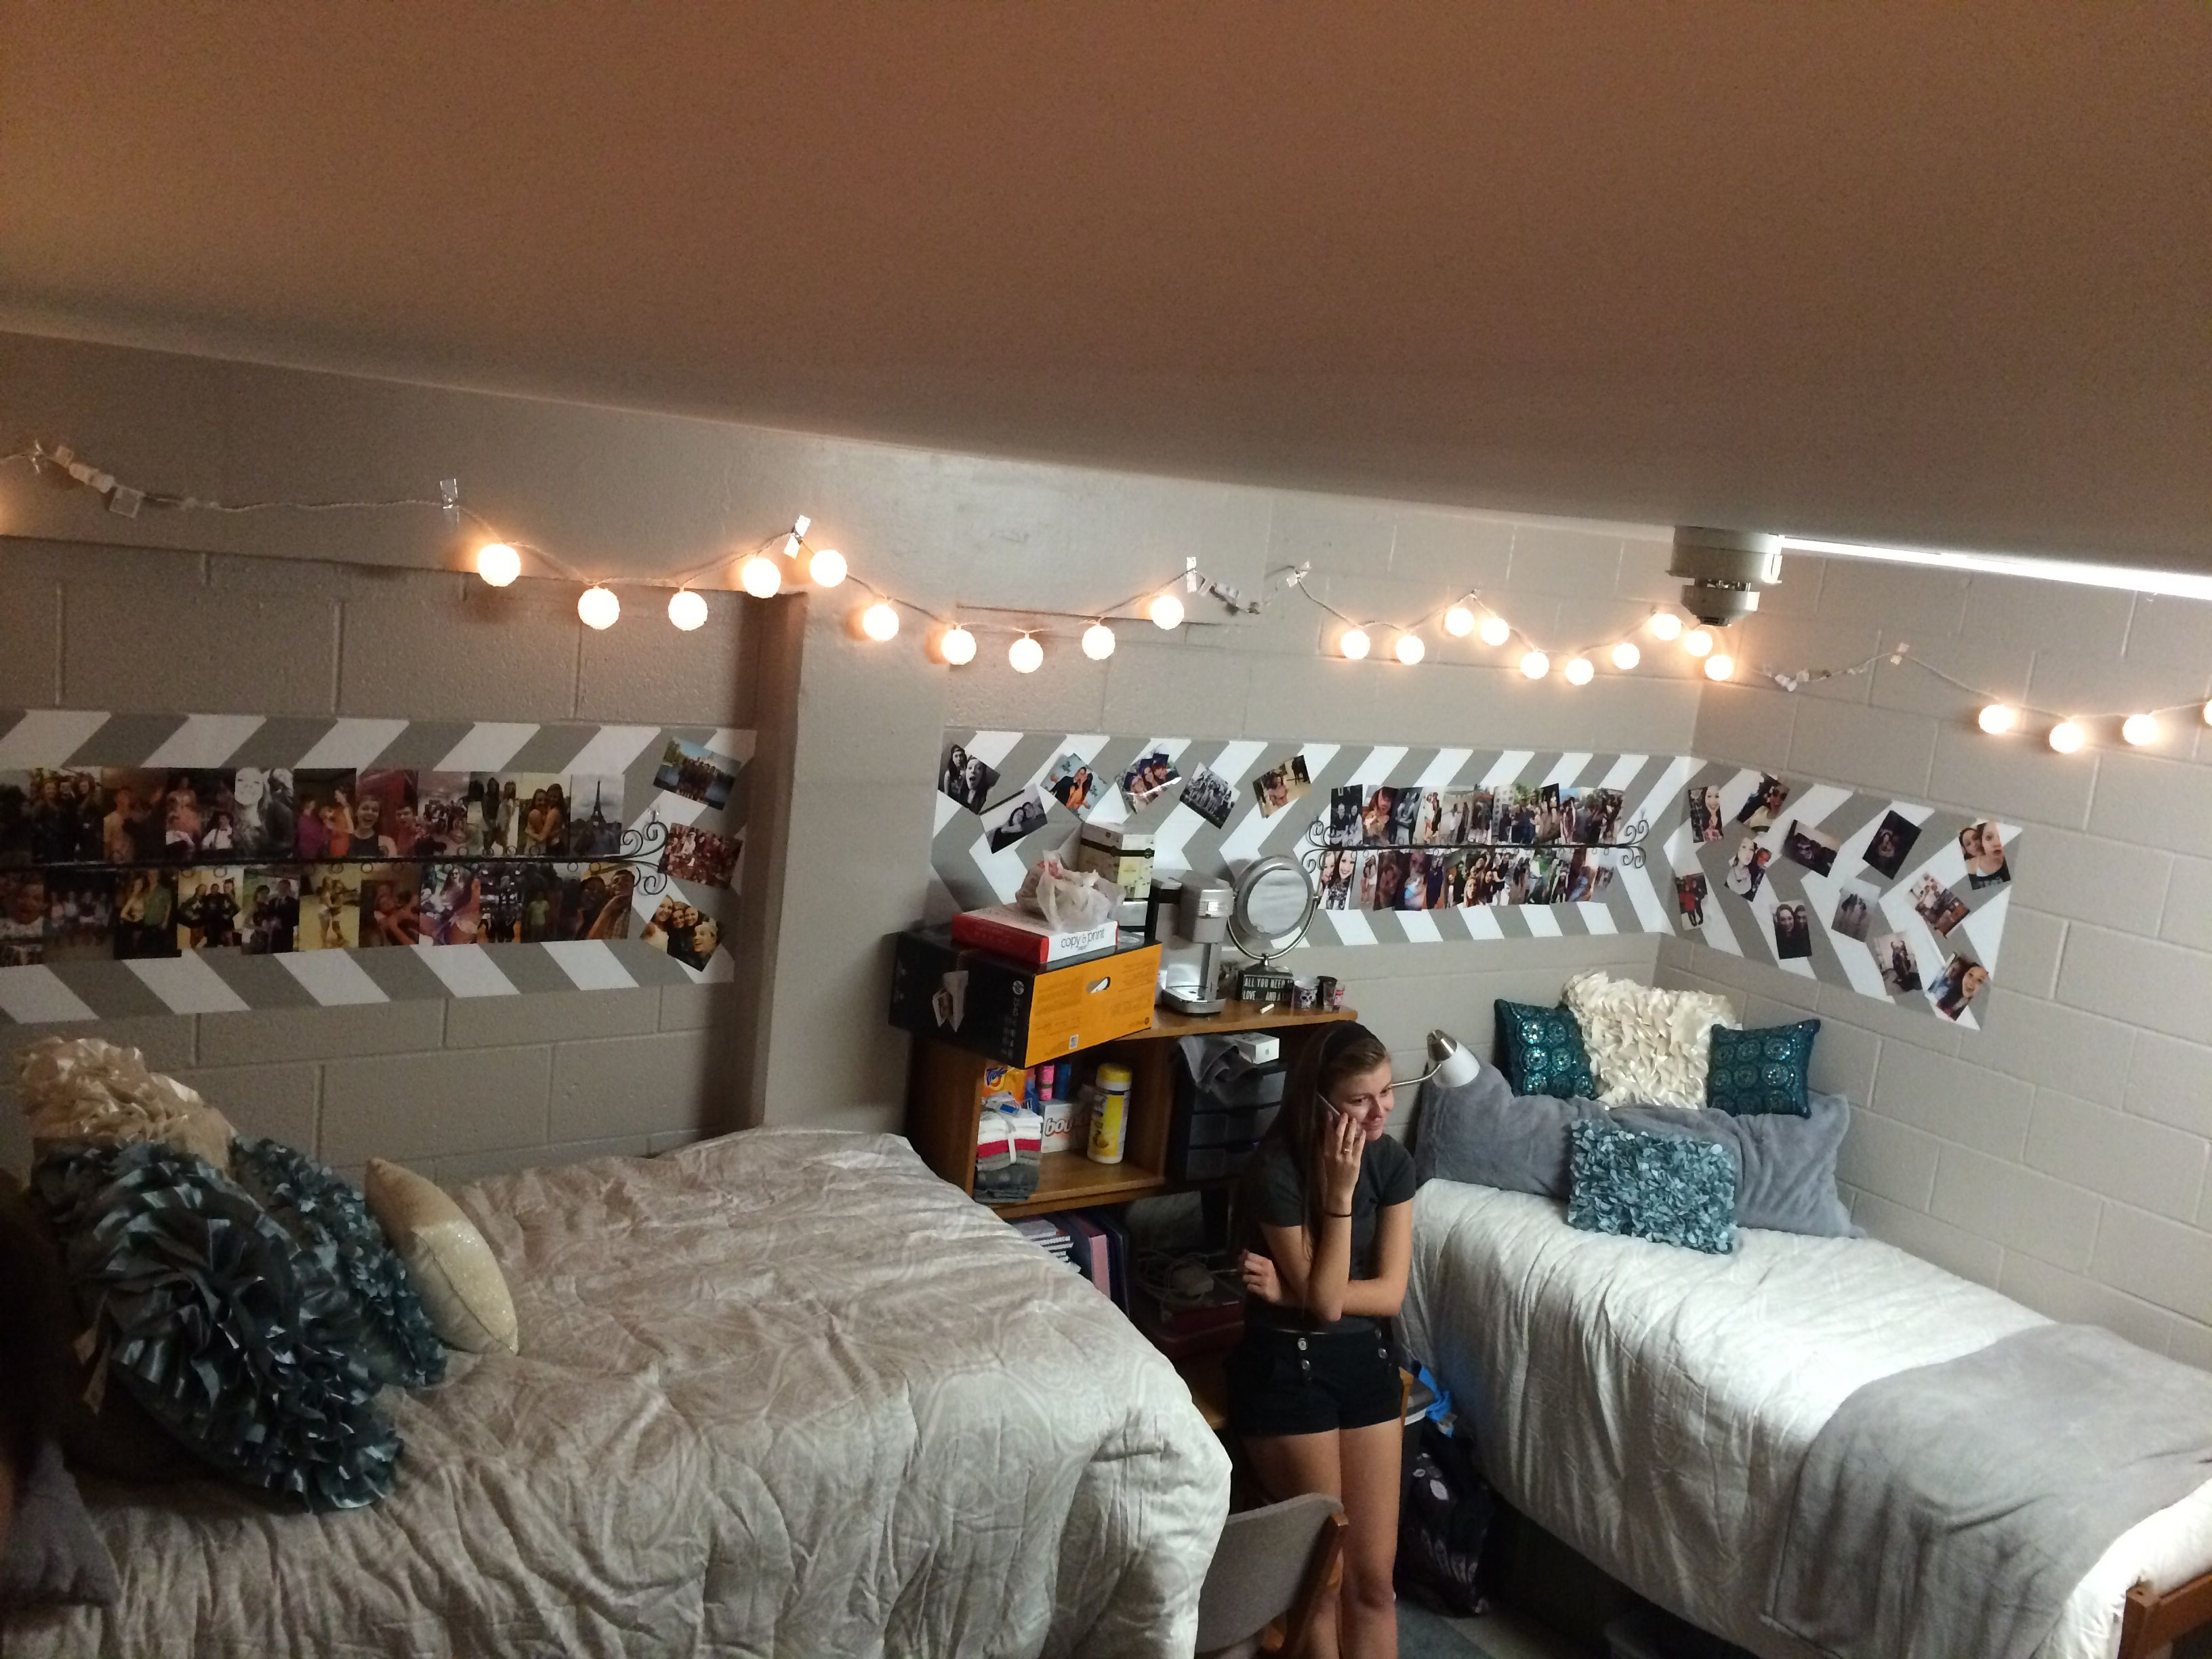 Dorm Room Ball State University With Images Dorm Sweet Dorm